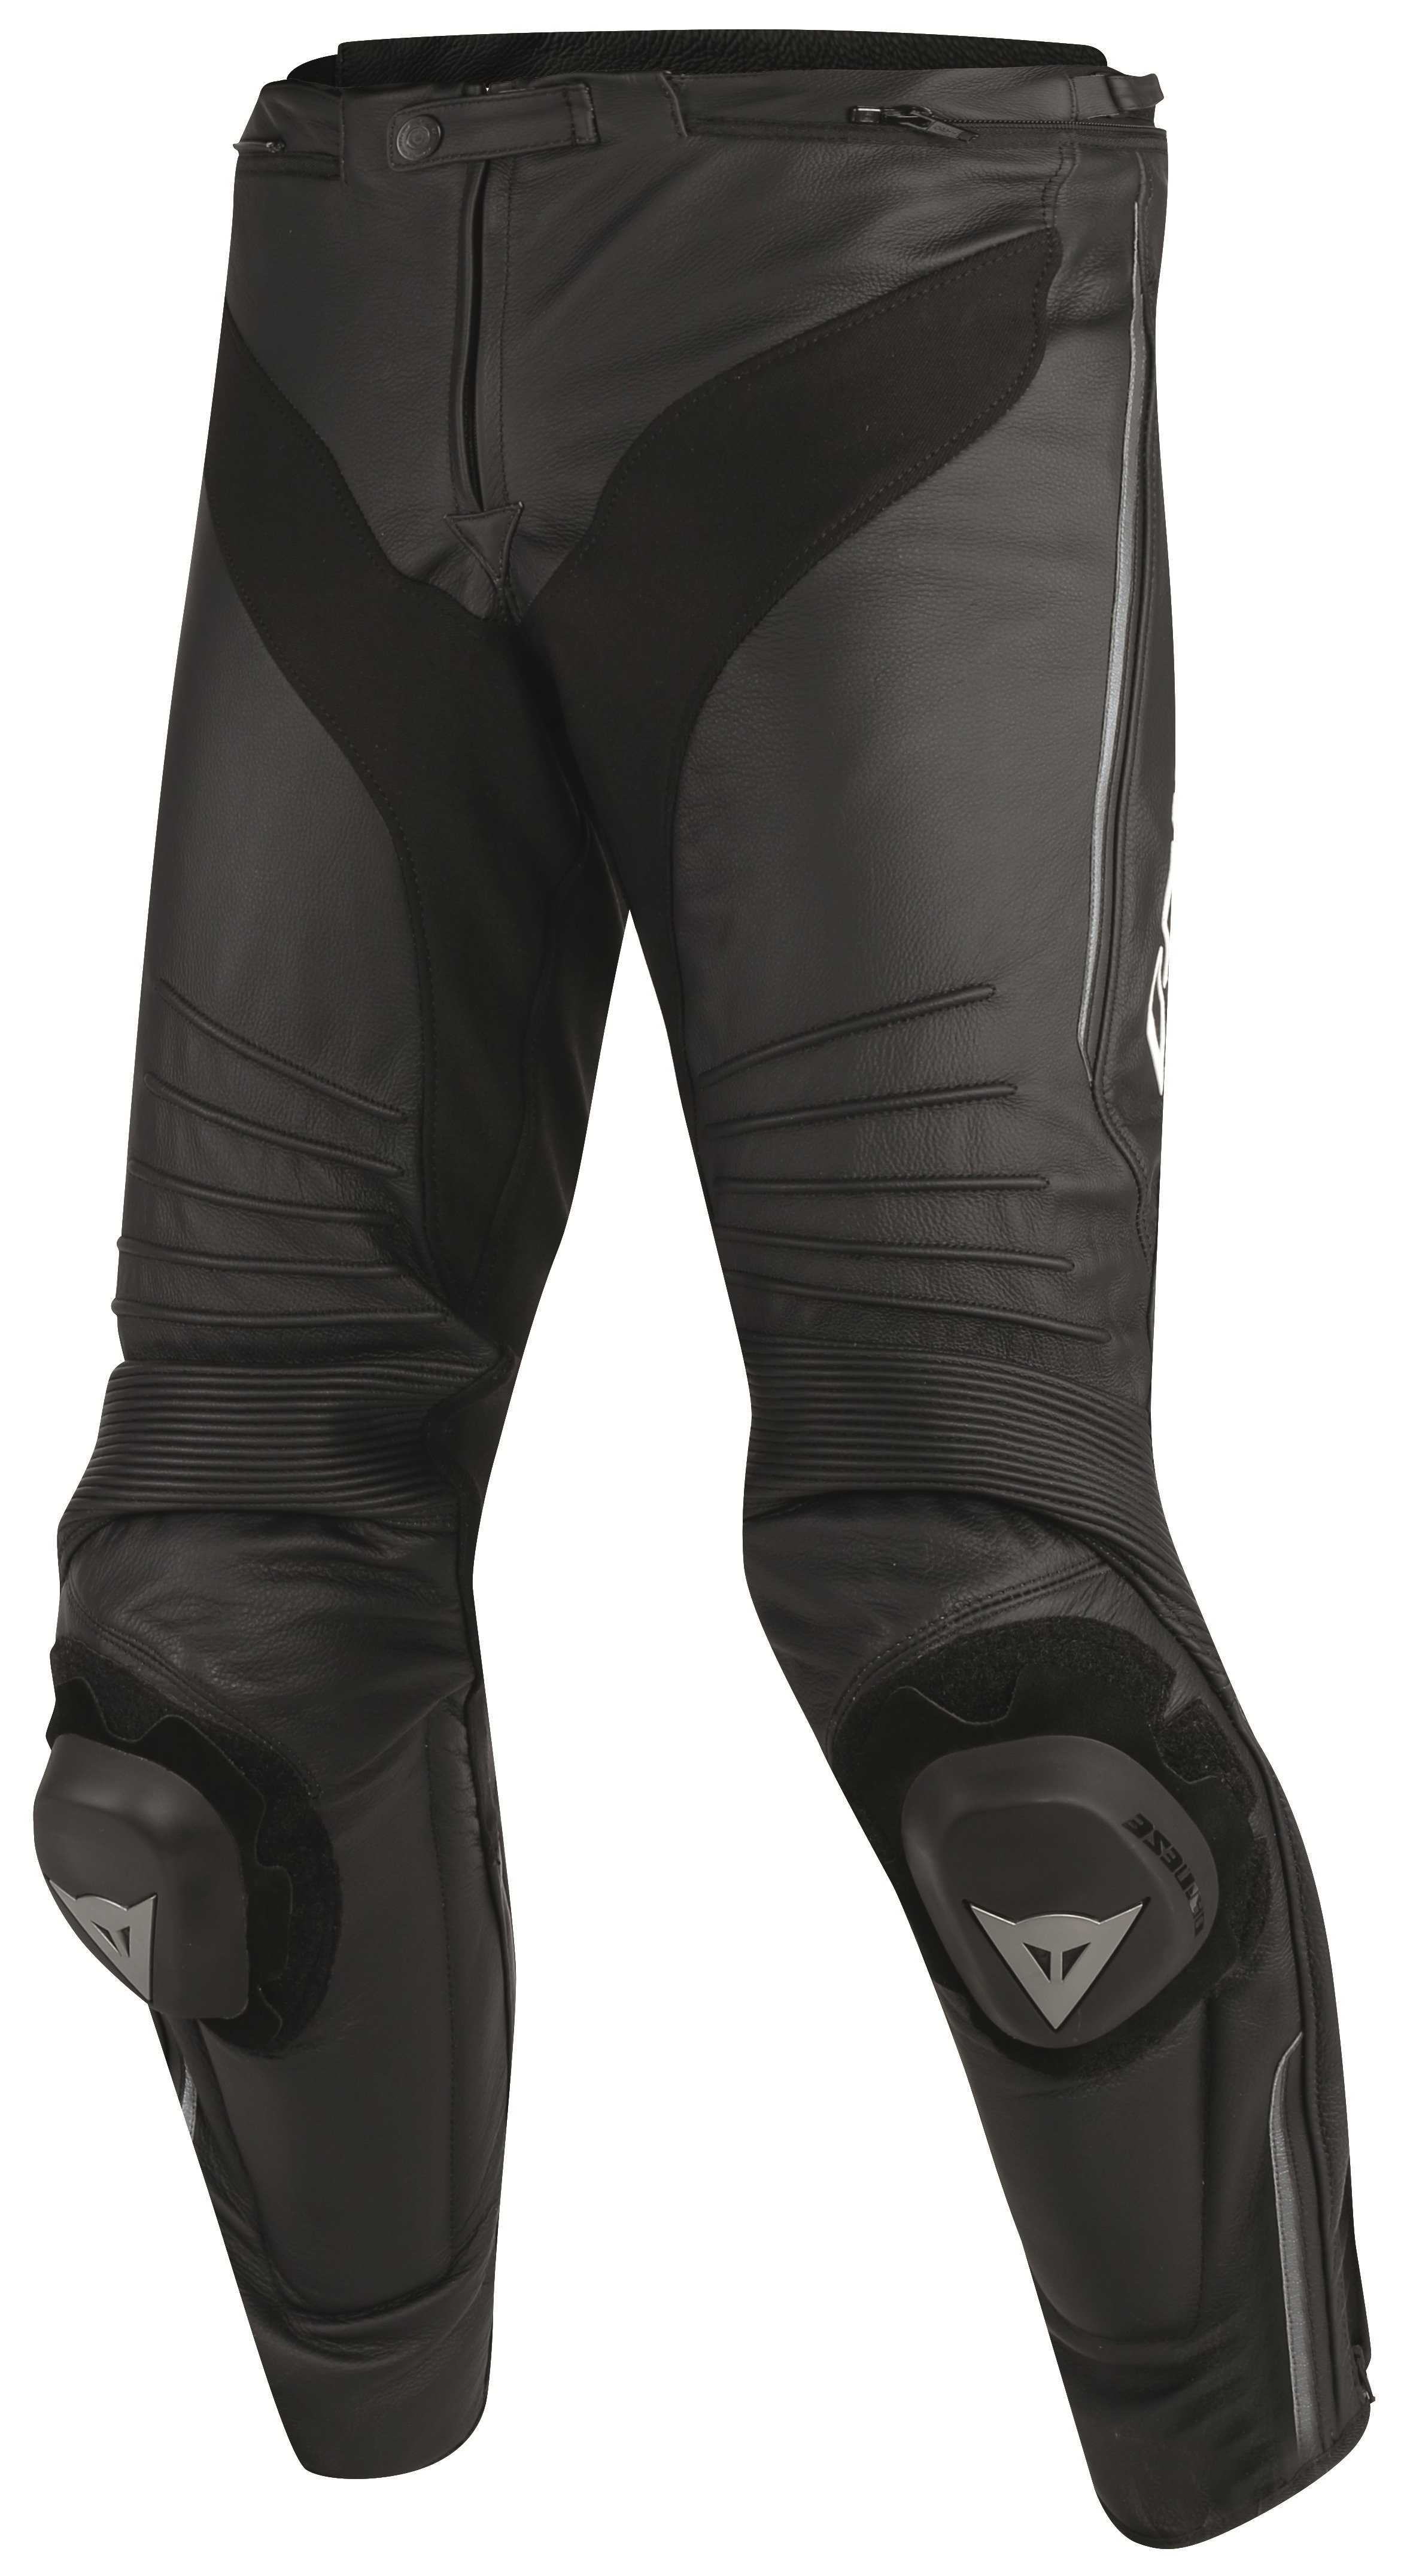 stable quality on sale online buying new Dainese Misano Perforated Leather Pants